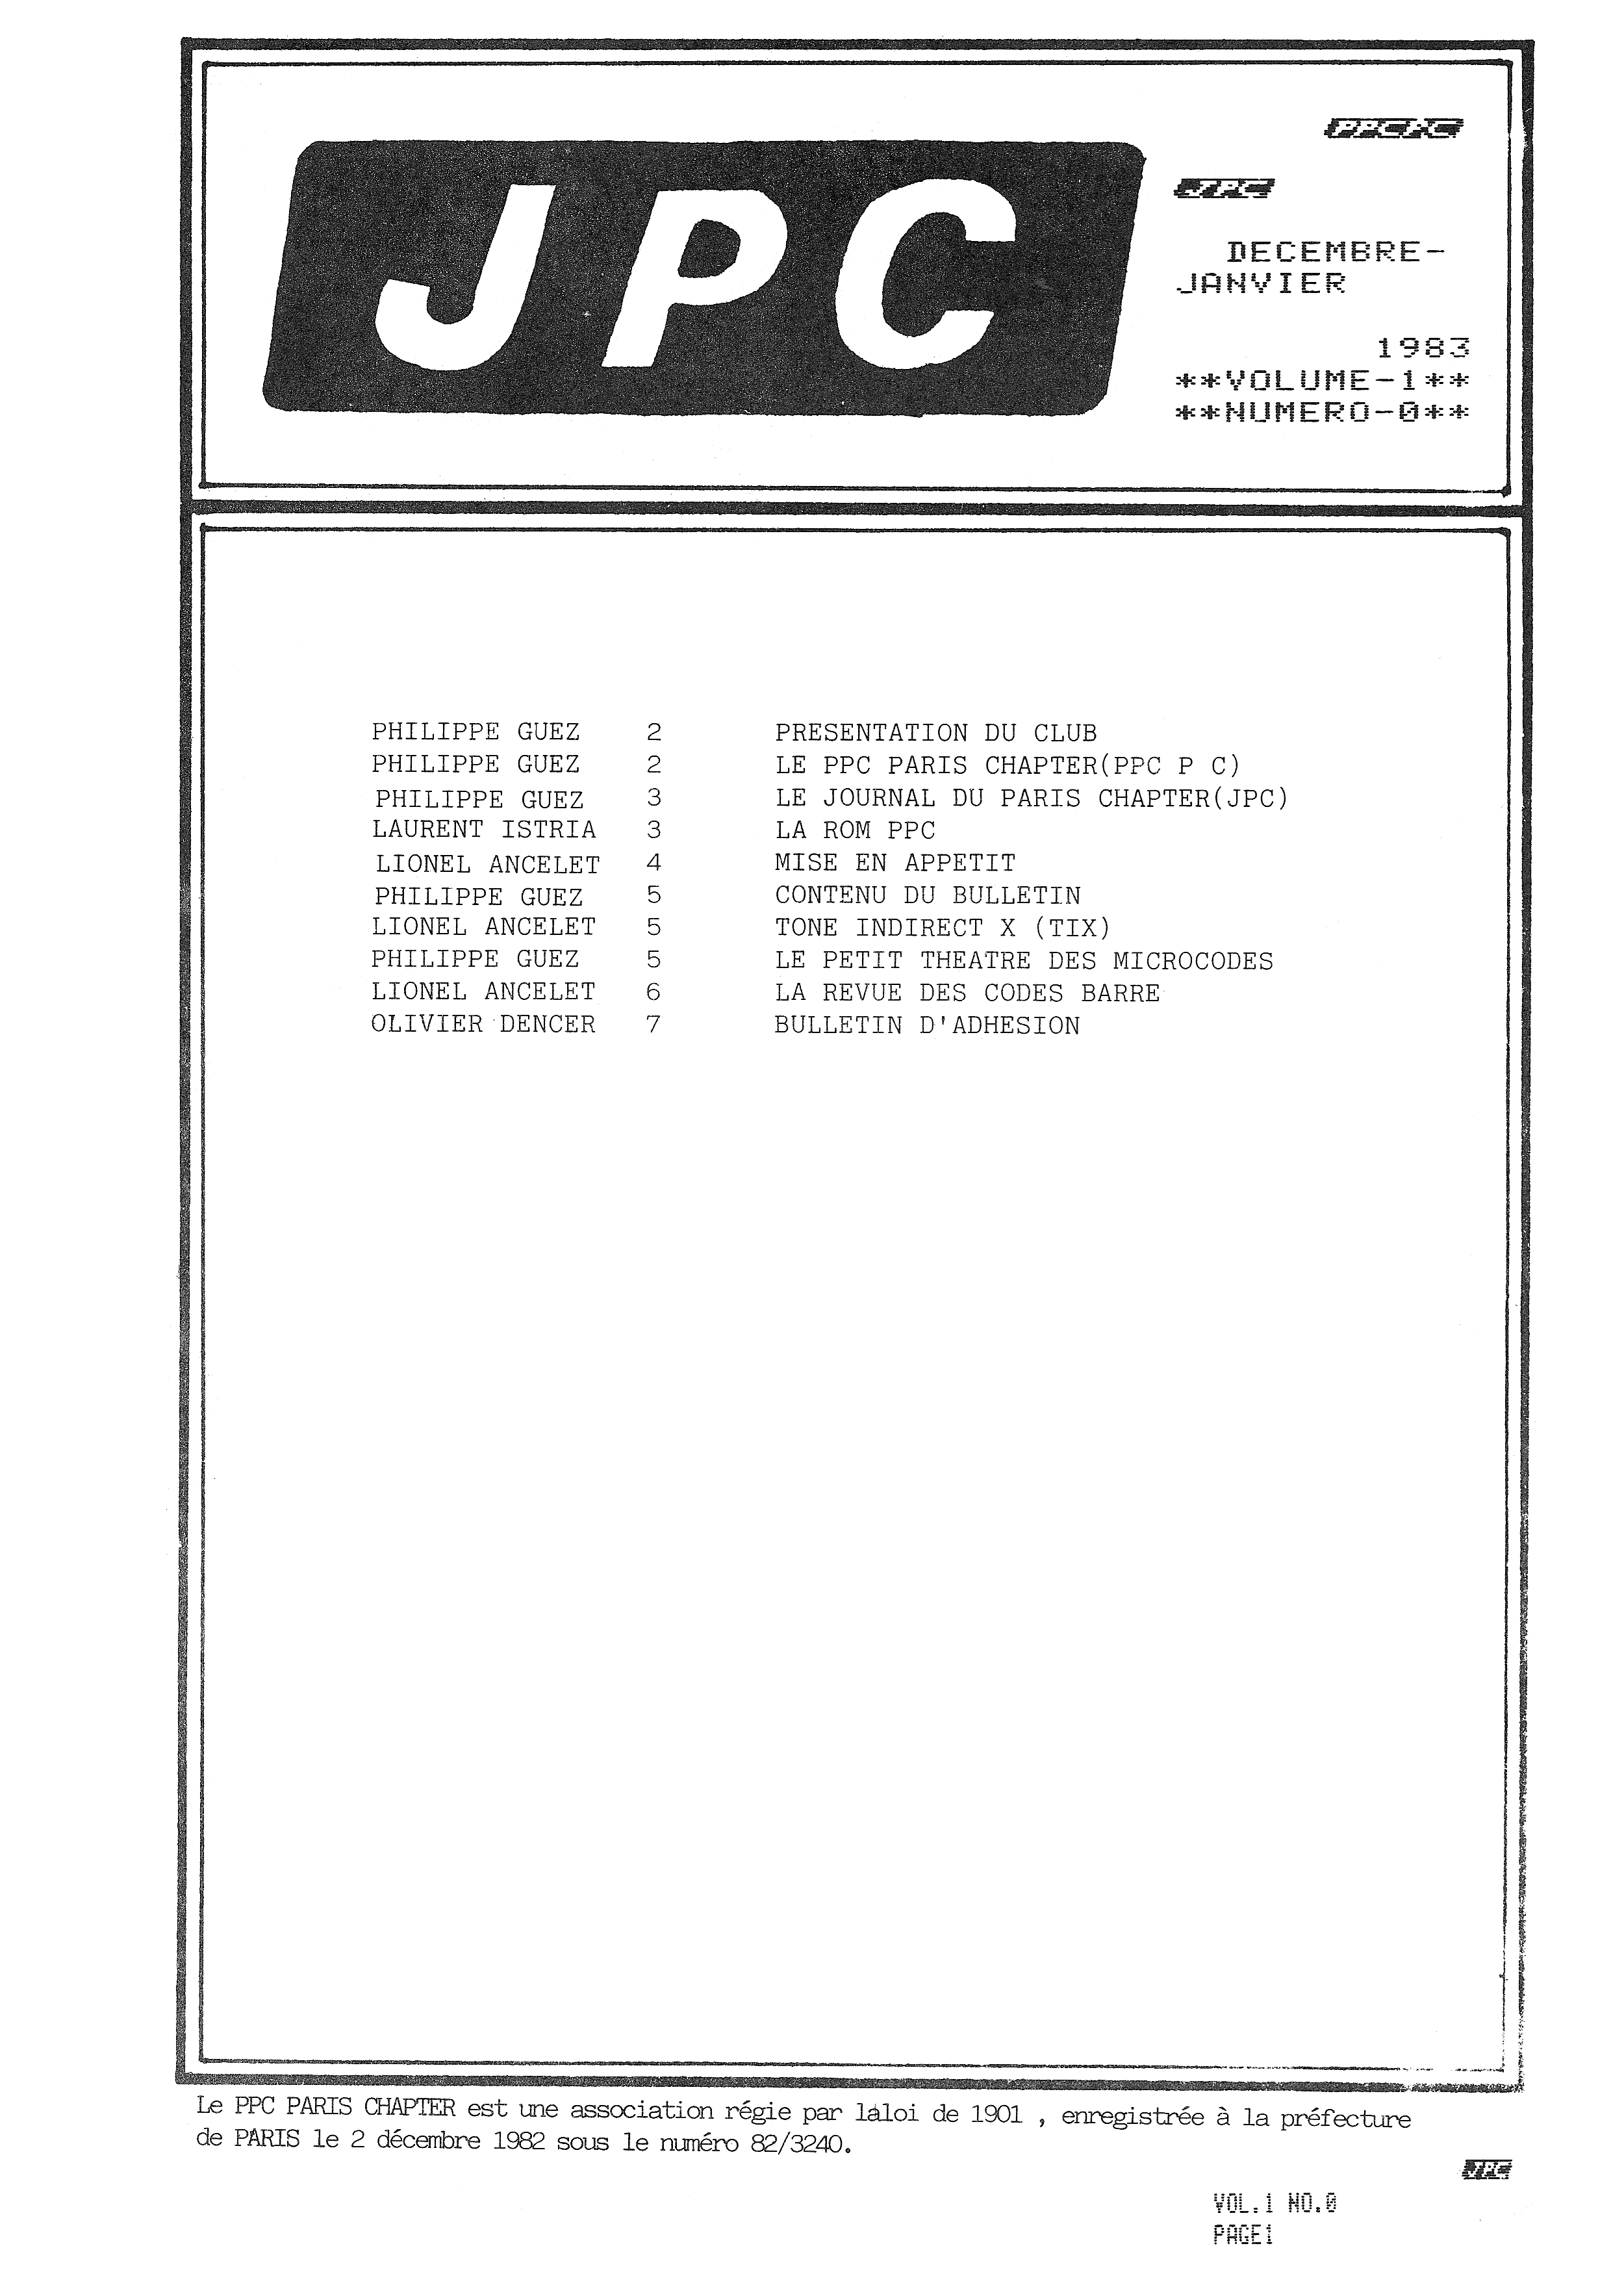 Jp-0-page-1-1000